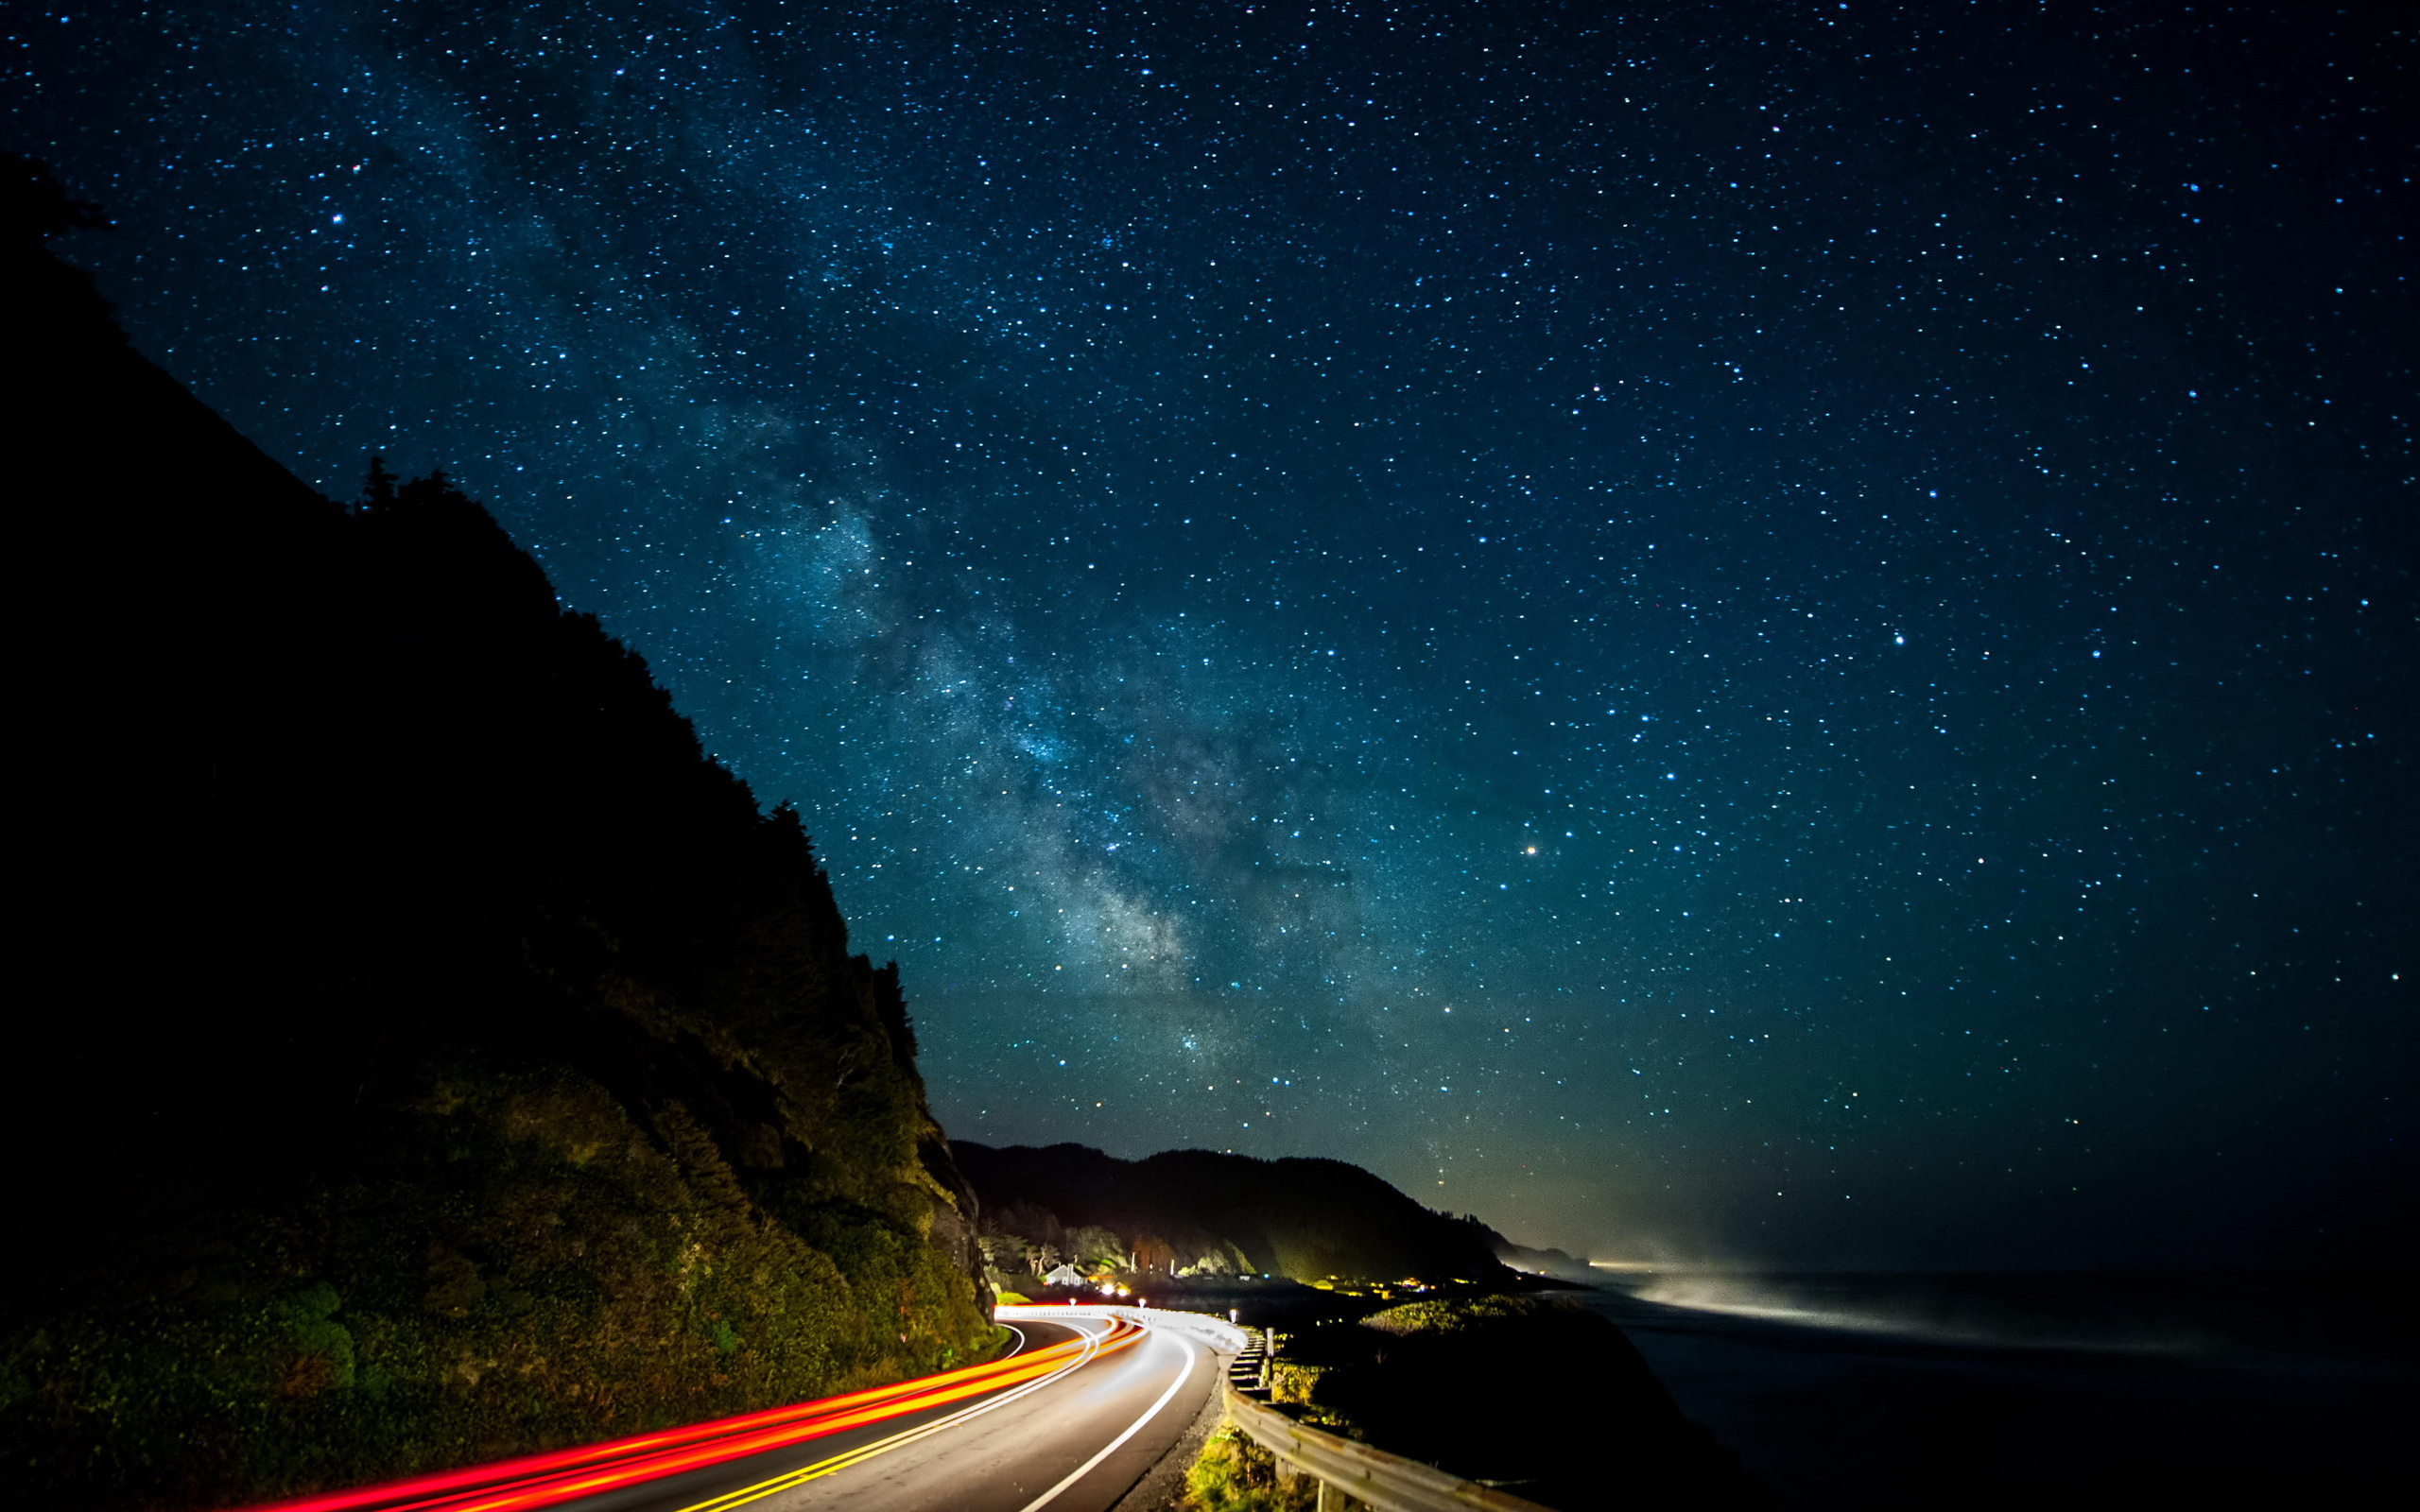 nature wallpapers night road - photo #21